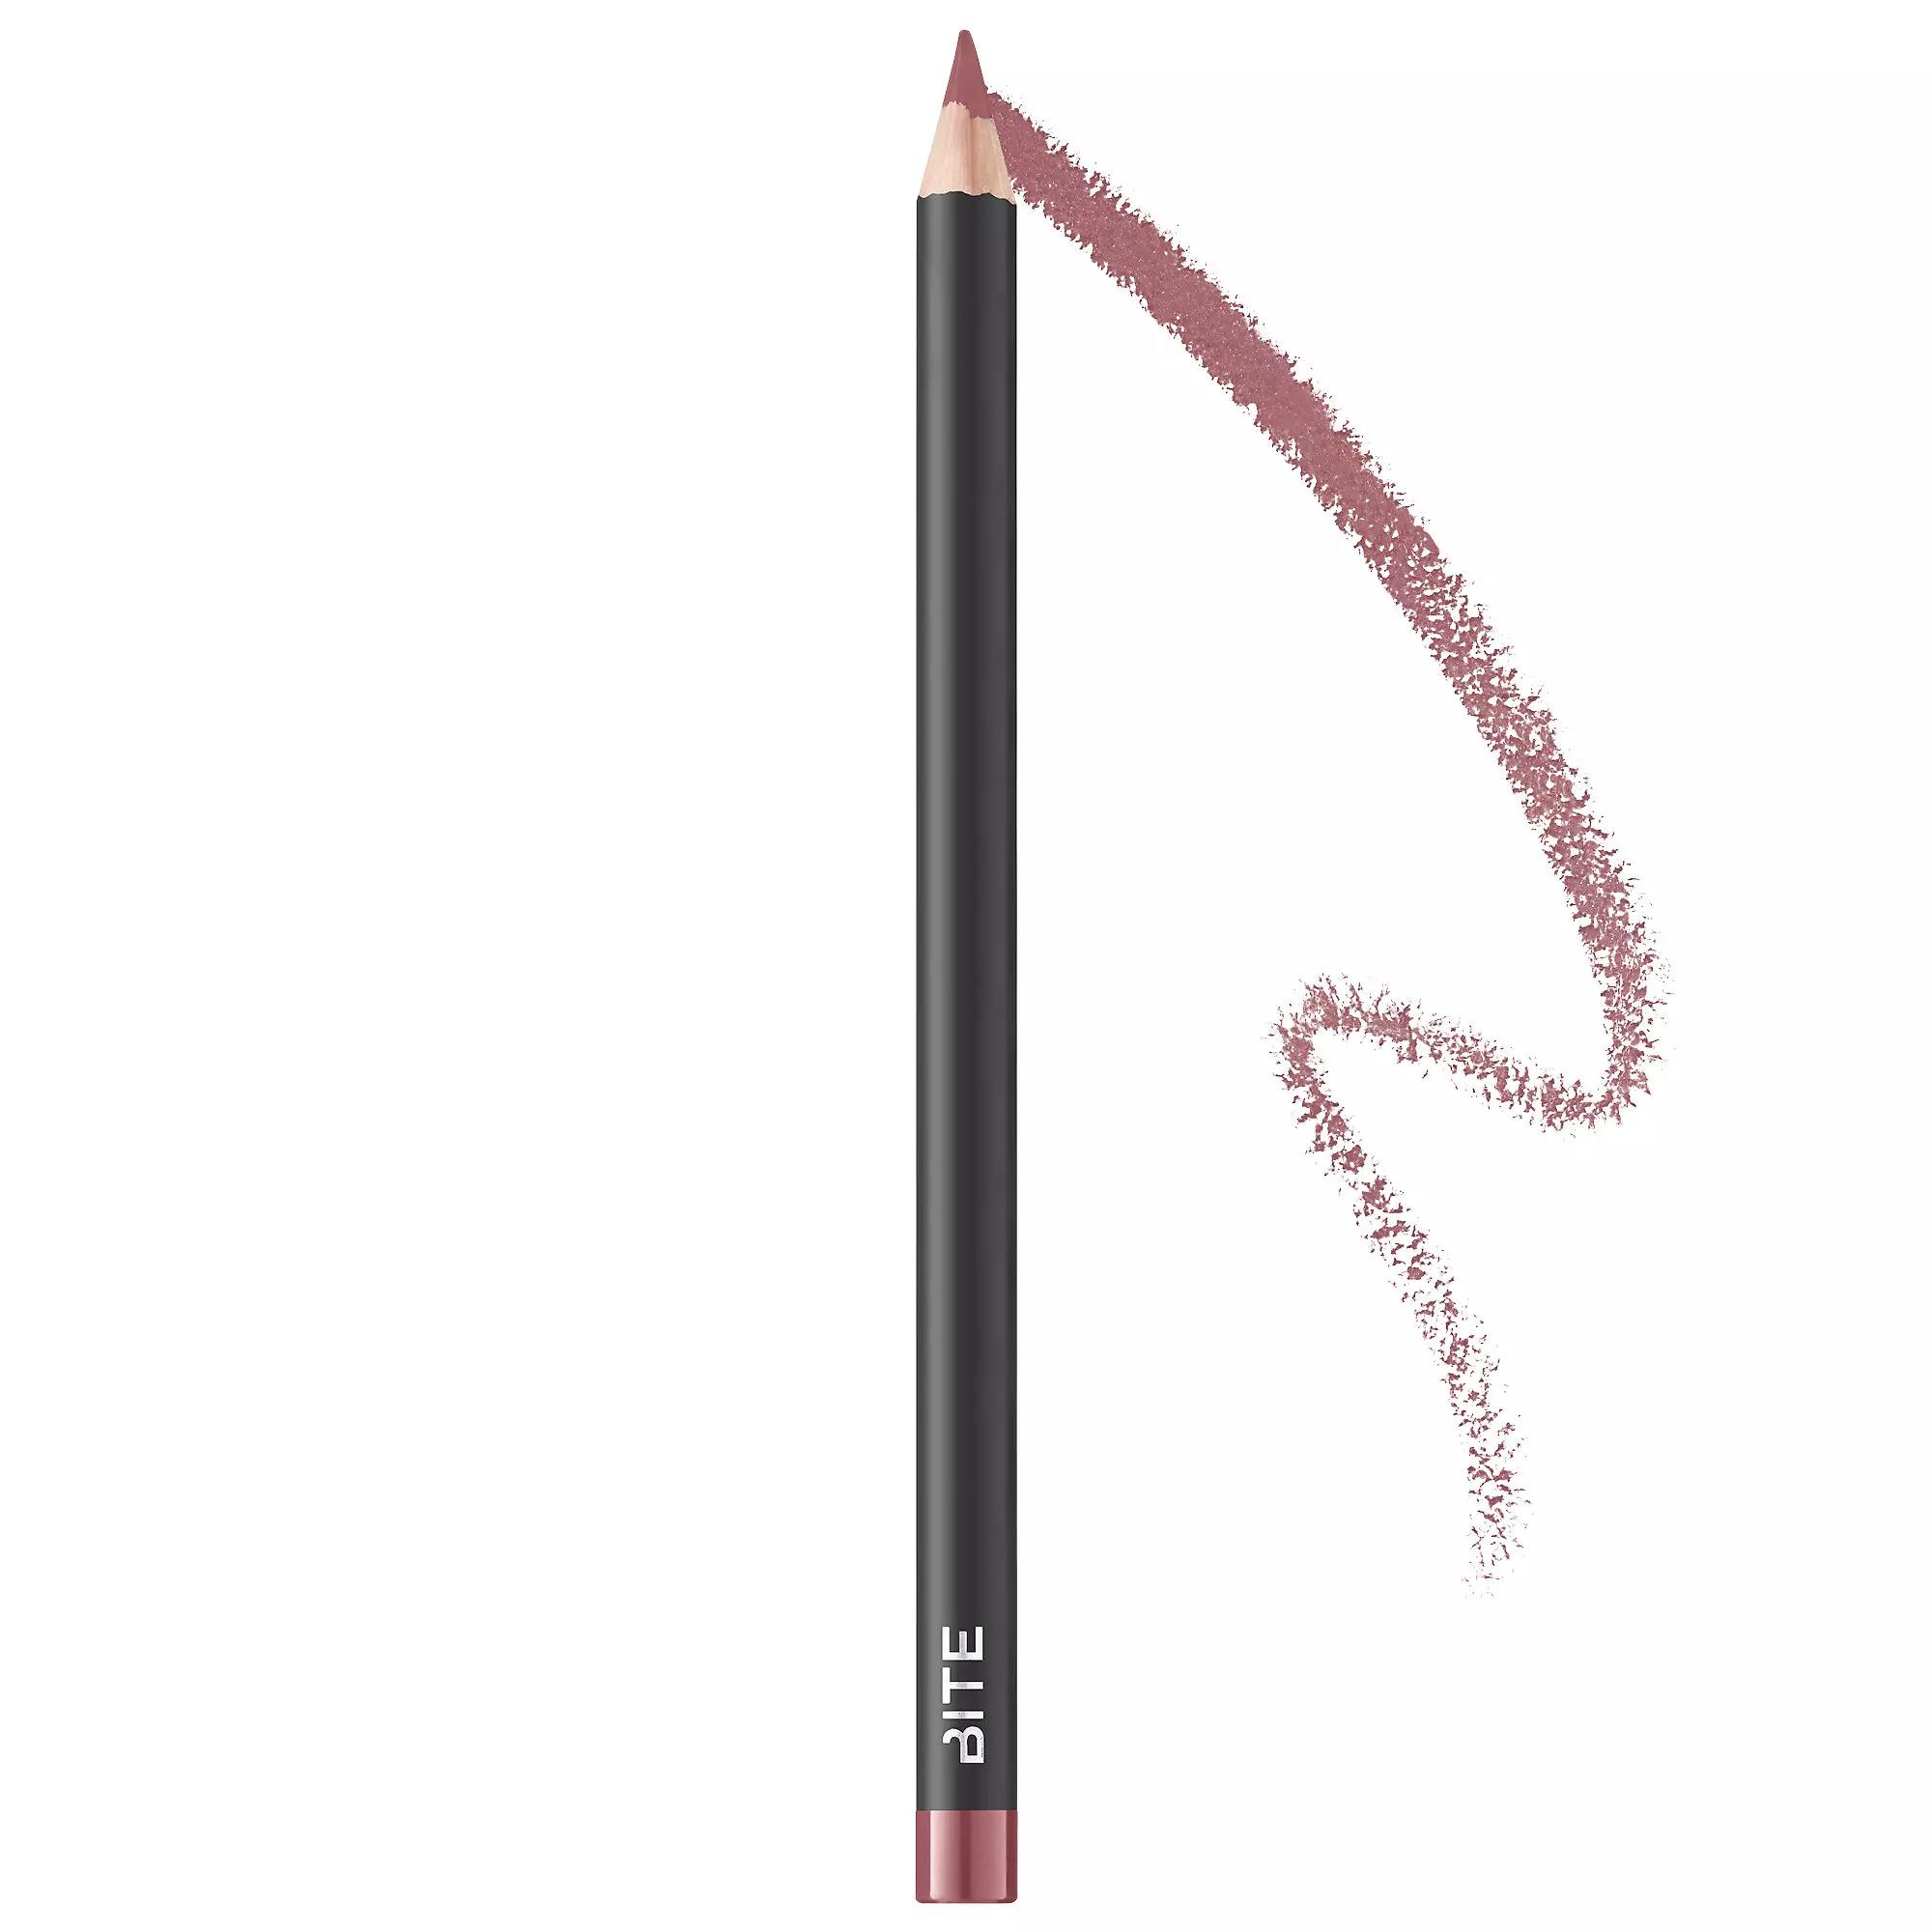 Bite Beauty The Lip Pencil Rosey Brown 022 Mini